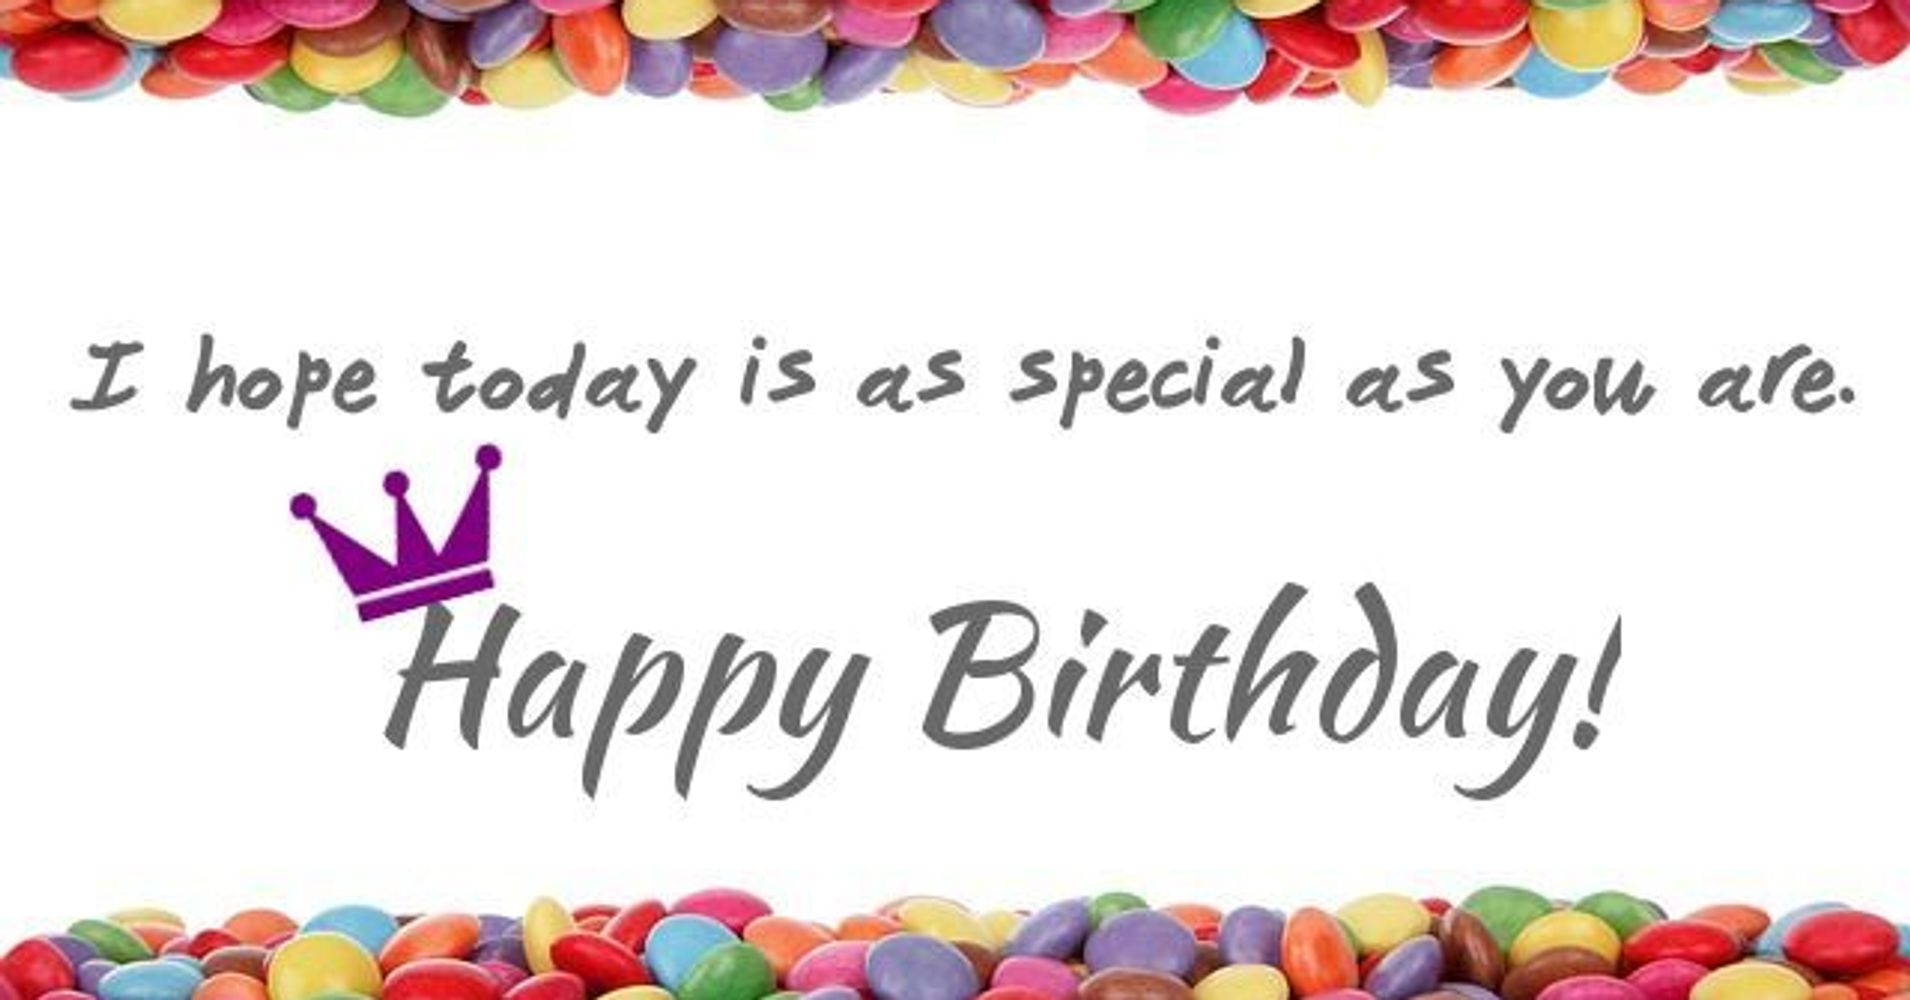 35 happy birthday wishes quotes messages with funny romantic 35 happy birthday wishes quotes messages with funny romantic images huffpost m4hsunfo